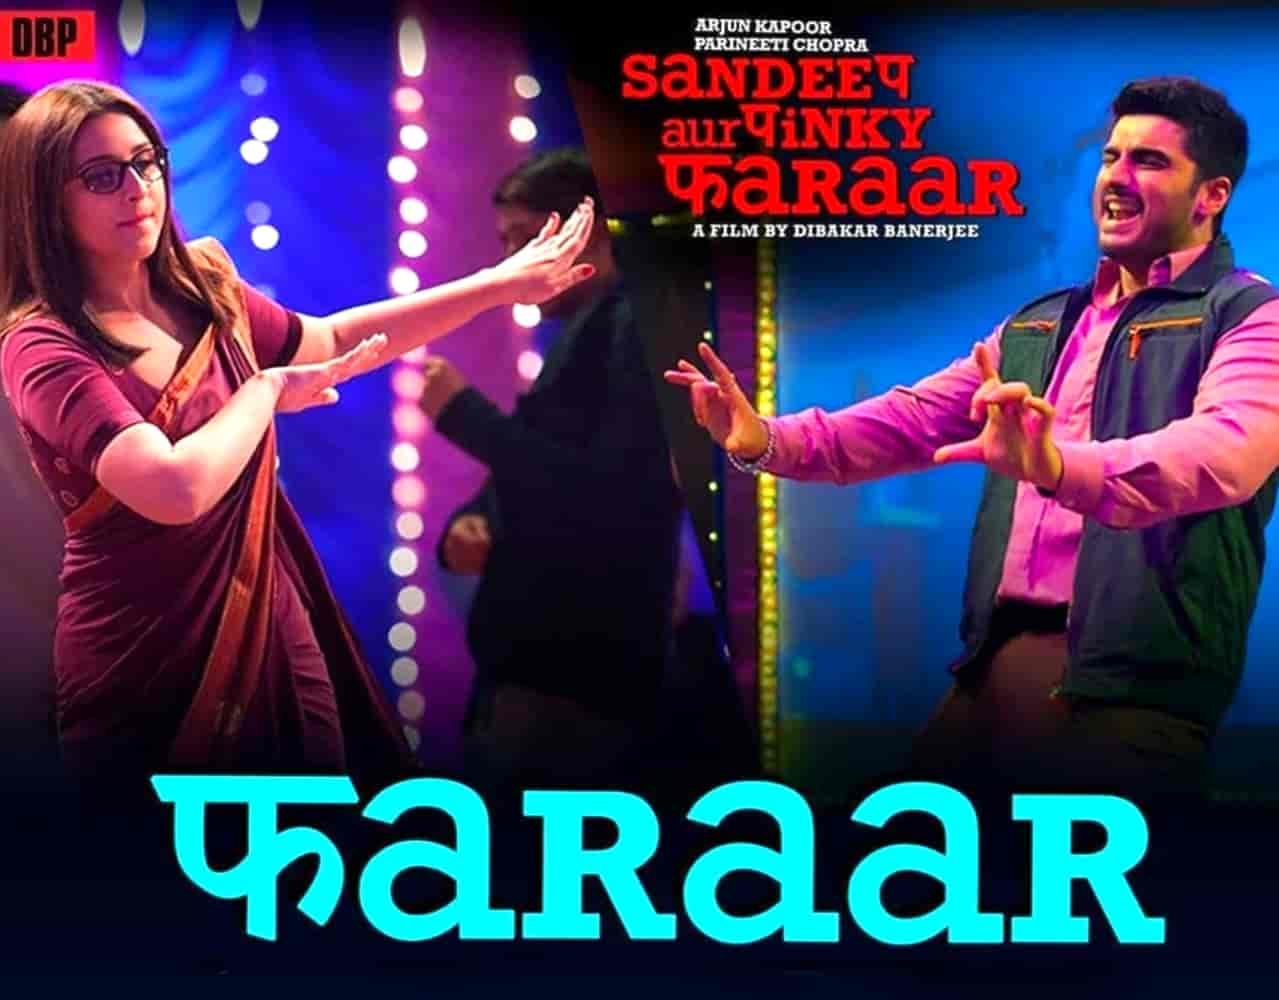 Faraar Lyrics :- The first song Faraar has released from Arjun Kapoor and Parineeti Chopra starrer movie Sandeep Aur Pinki Faraar. This song has sung in the voice of very talented artist Anu Malik. Music of this song also has given by Anu Malik himself while this fresh song Faraar lyrics has written by Any Malik and Dibakar Banerjee. This song is presented by YRF Music Label.